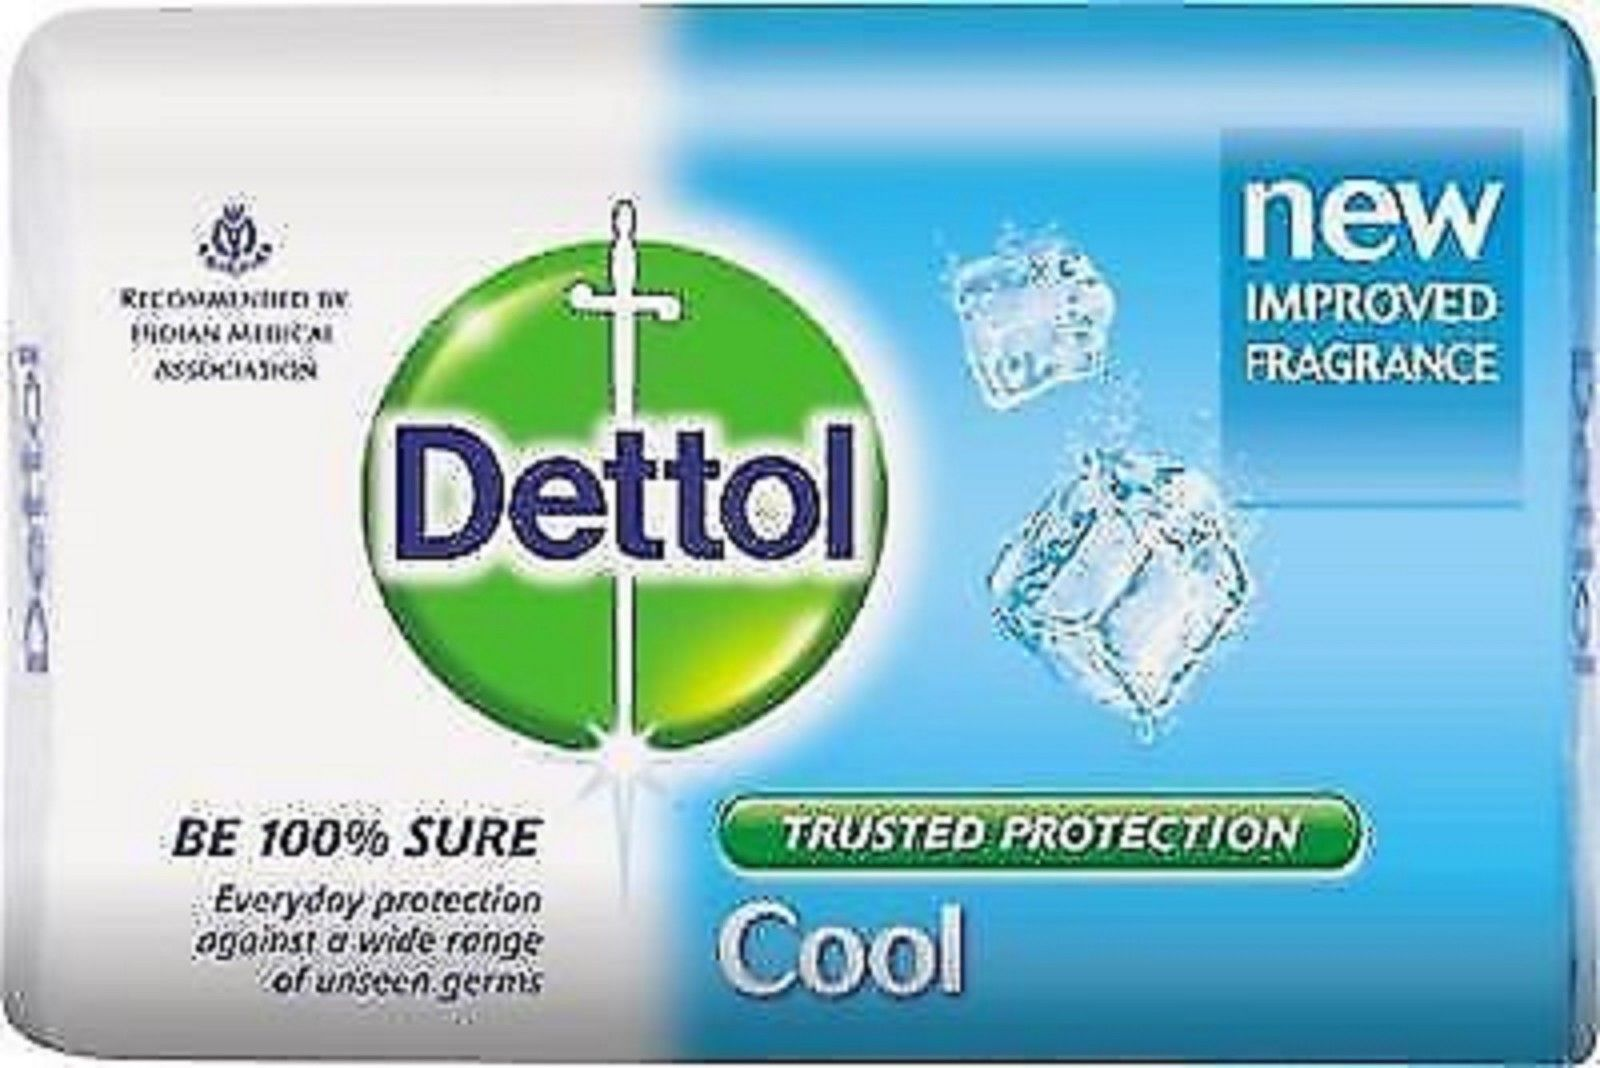 DETTOL COOL SOAP GIVES PROTECTION FROM UNSEEN GERMS 75 GM X 3 pack* image 4